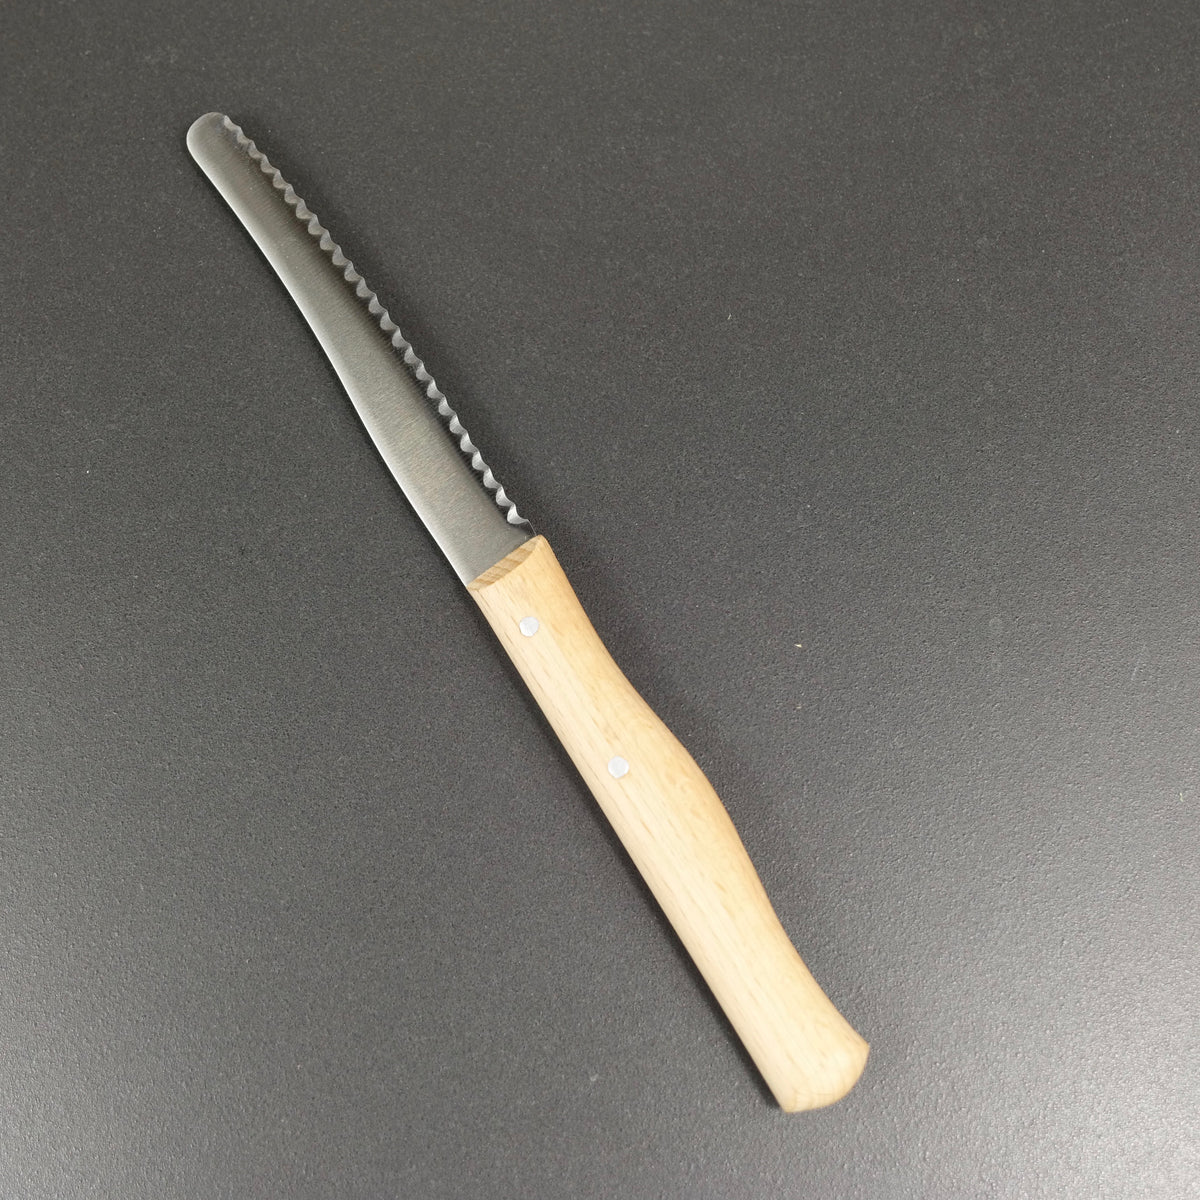 Tomato knife, Stainless steel - Windmühlenmesser